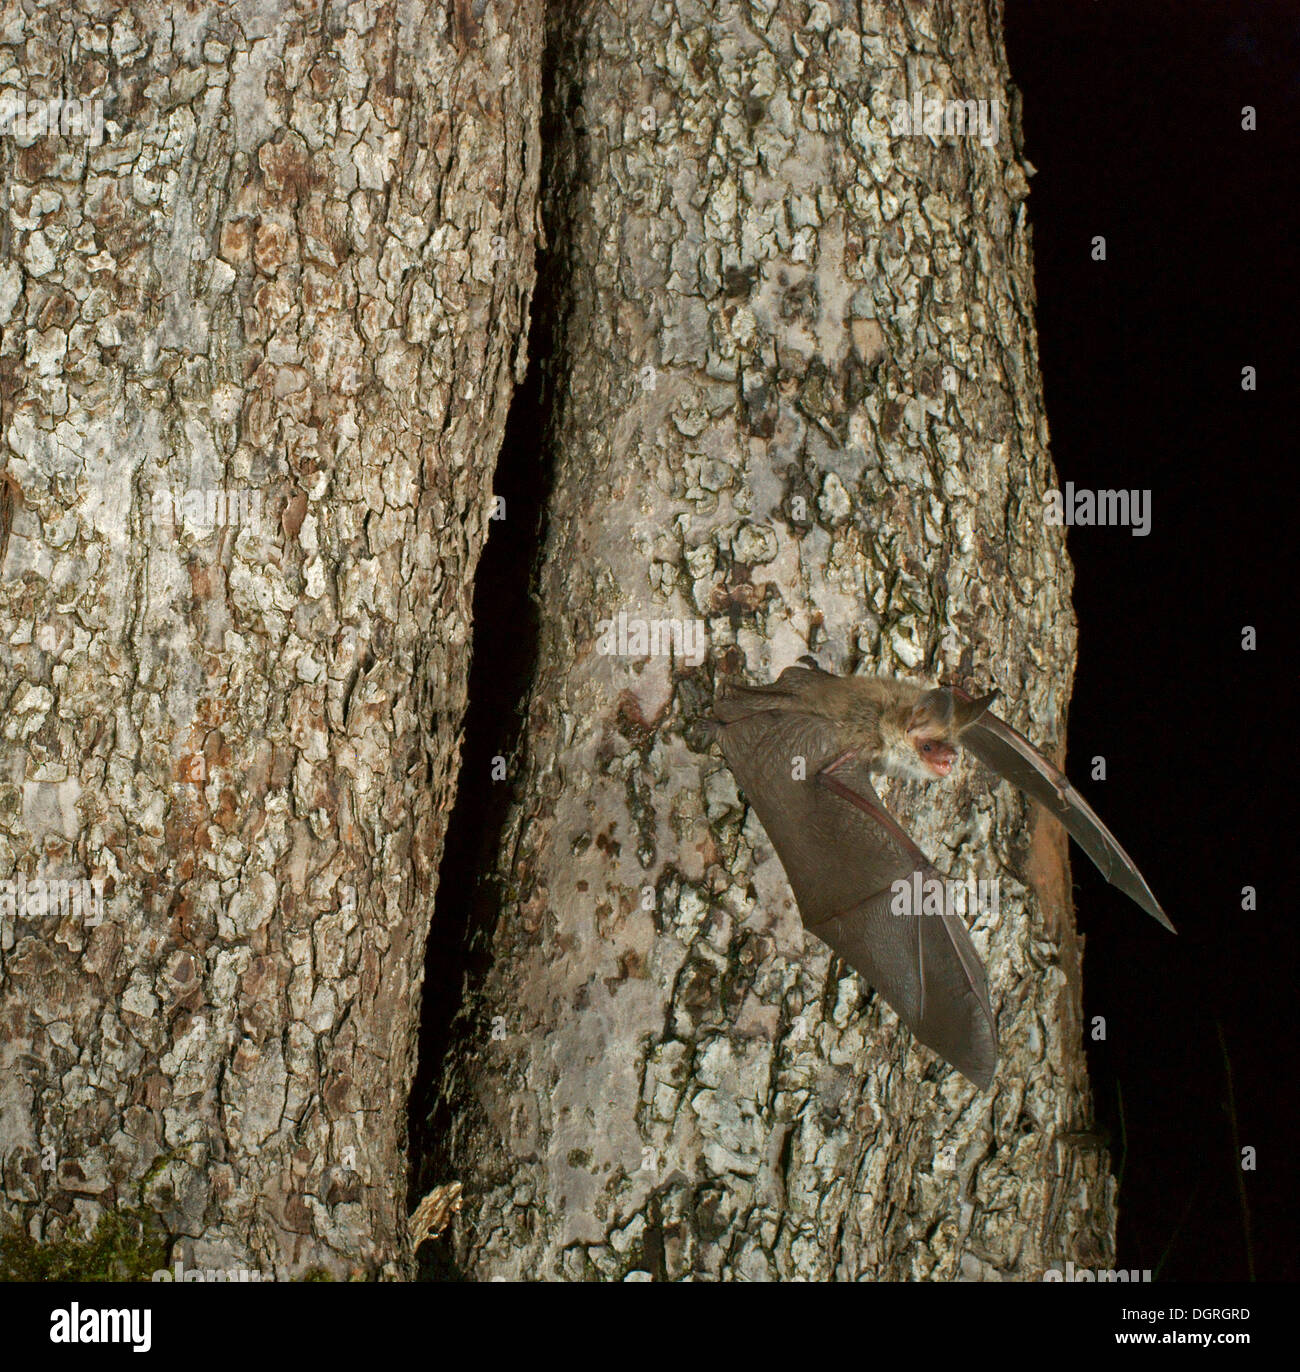 Bechstein's Bat (Myotis bechsteinii) flying out from their roost - Stock Image